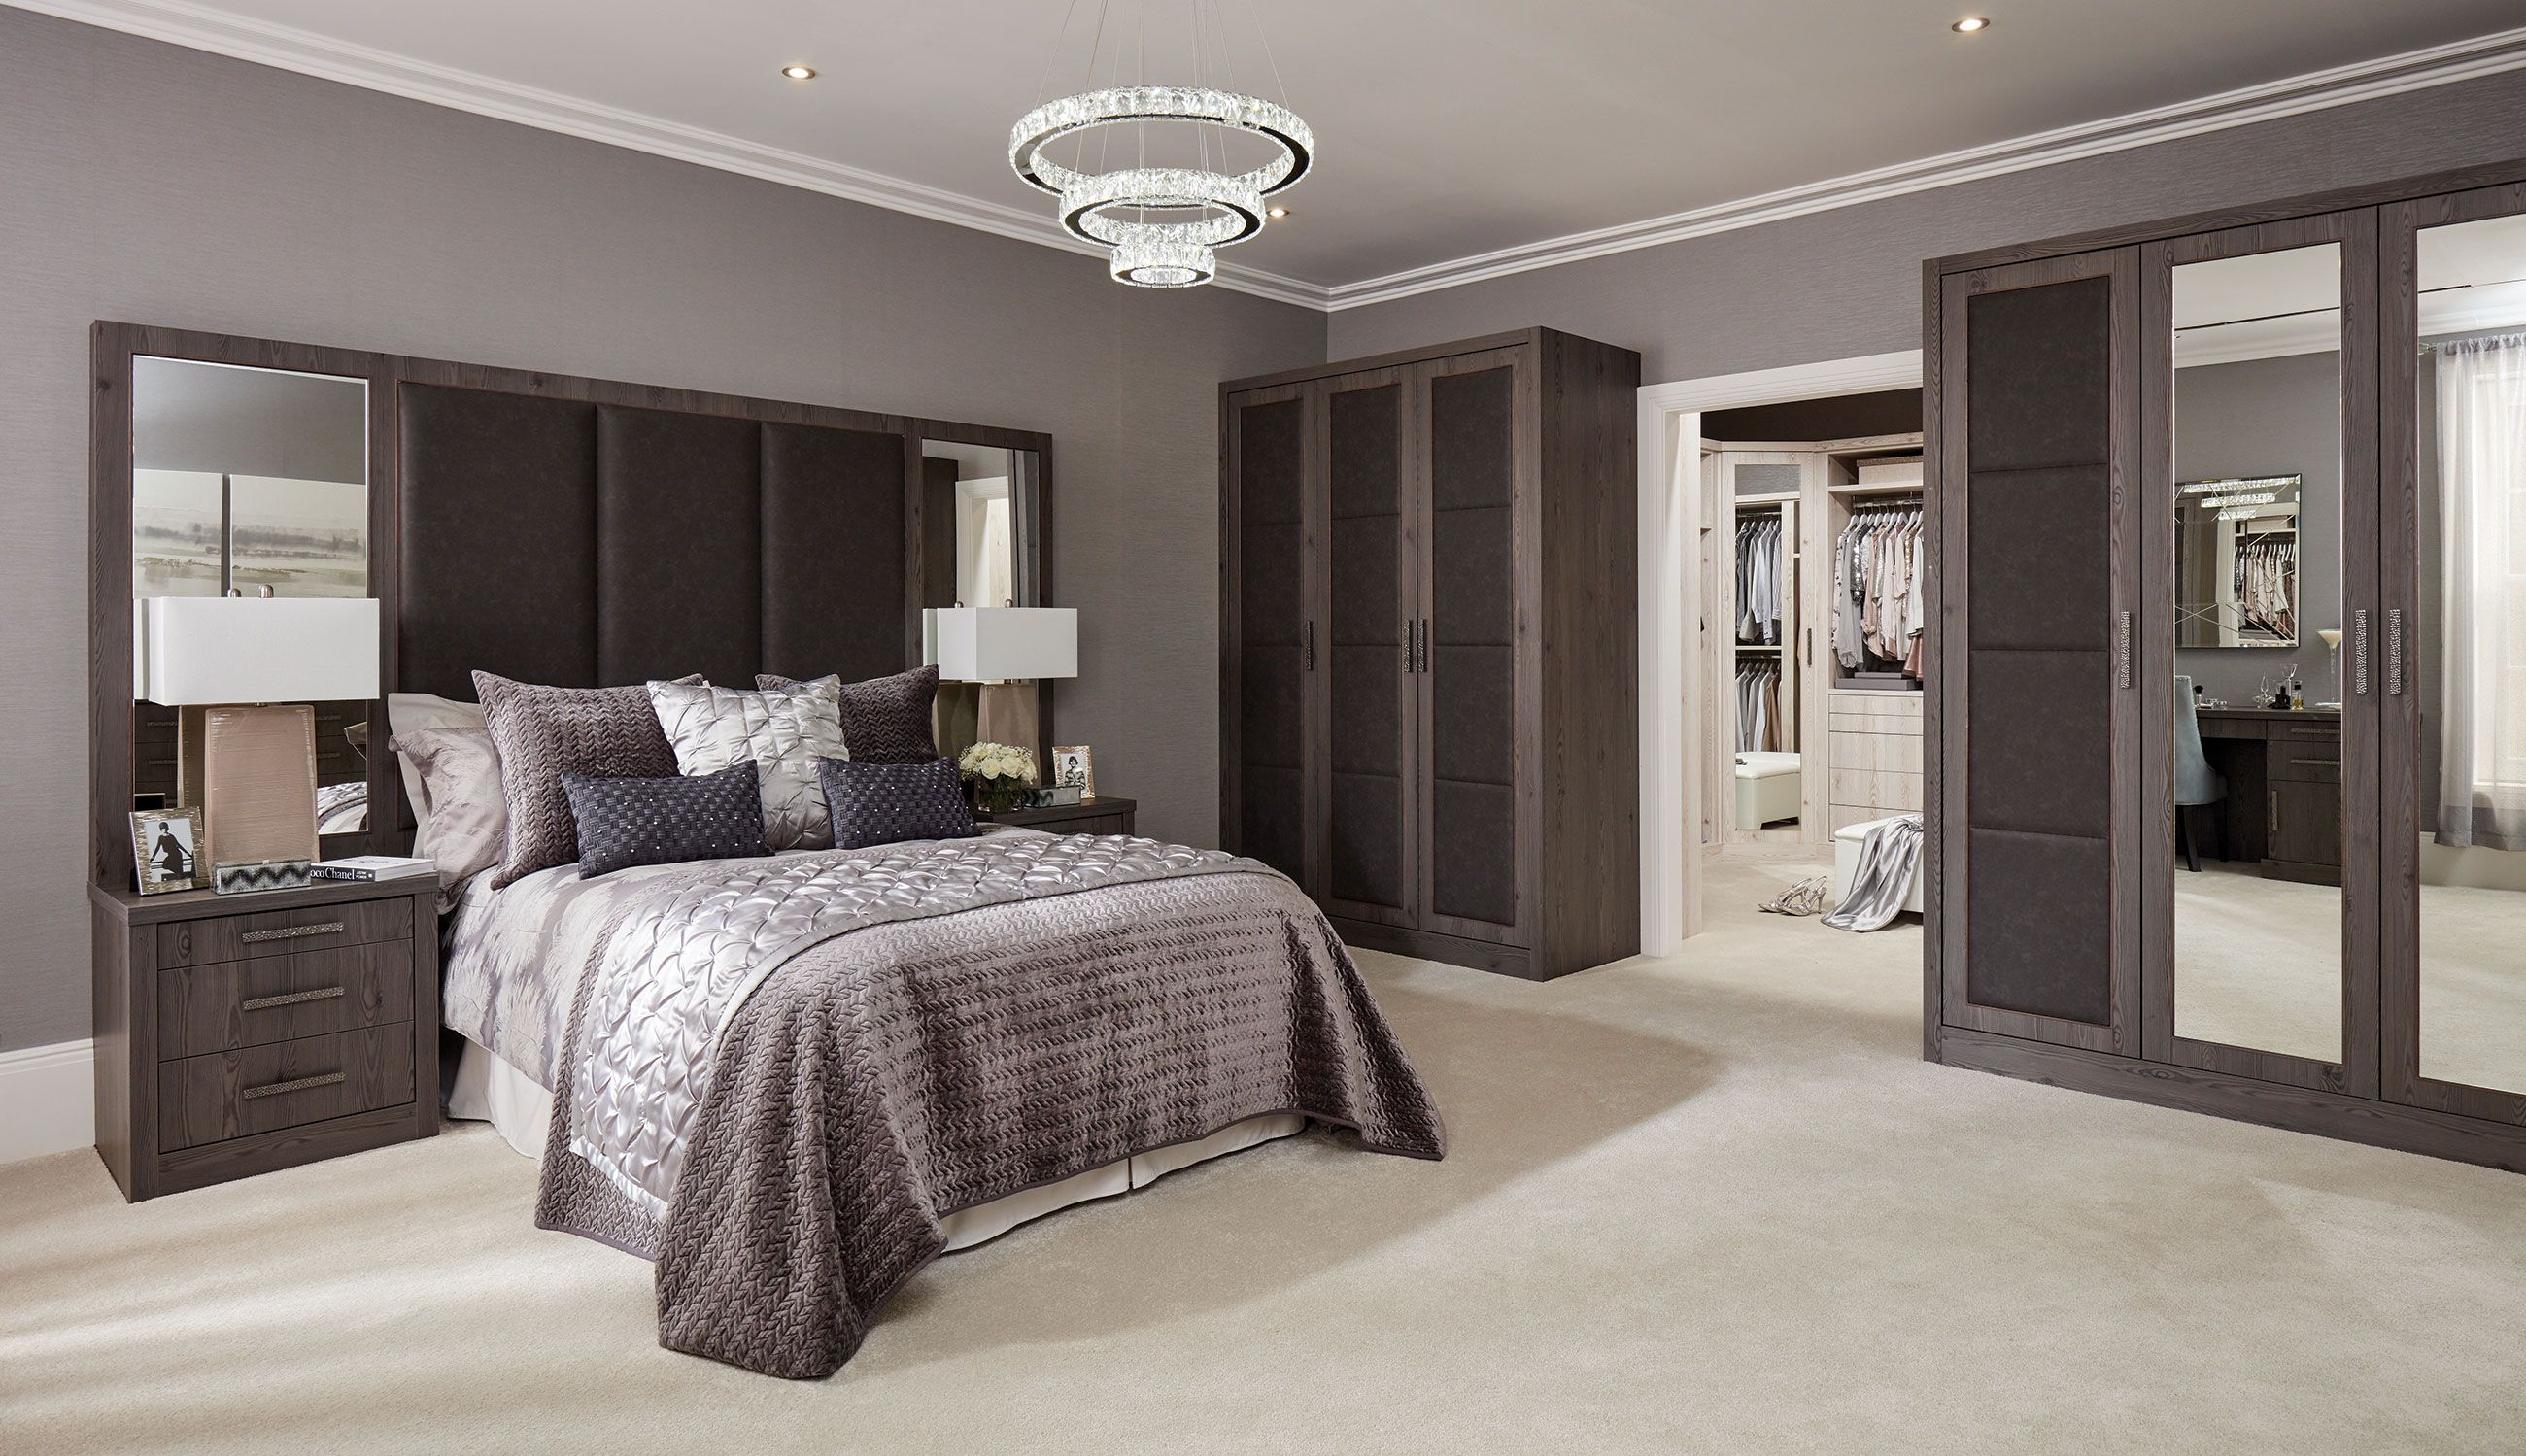 Boutique Hotel Style Bedroom Fitted Bedrooms Boutique Hotel